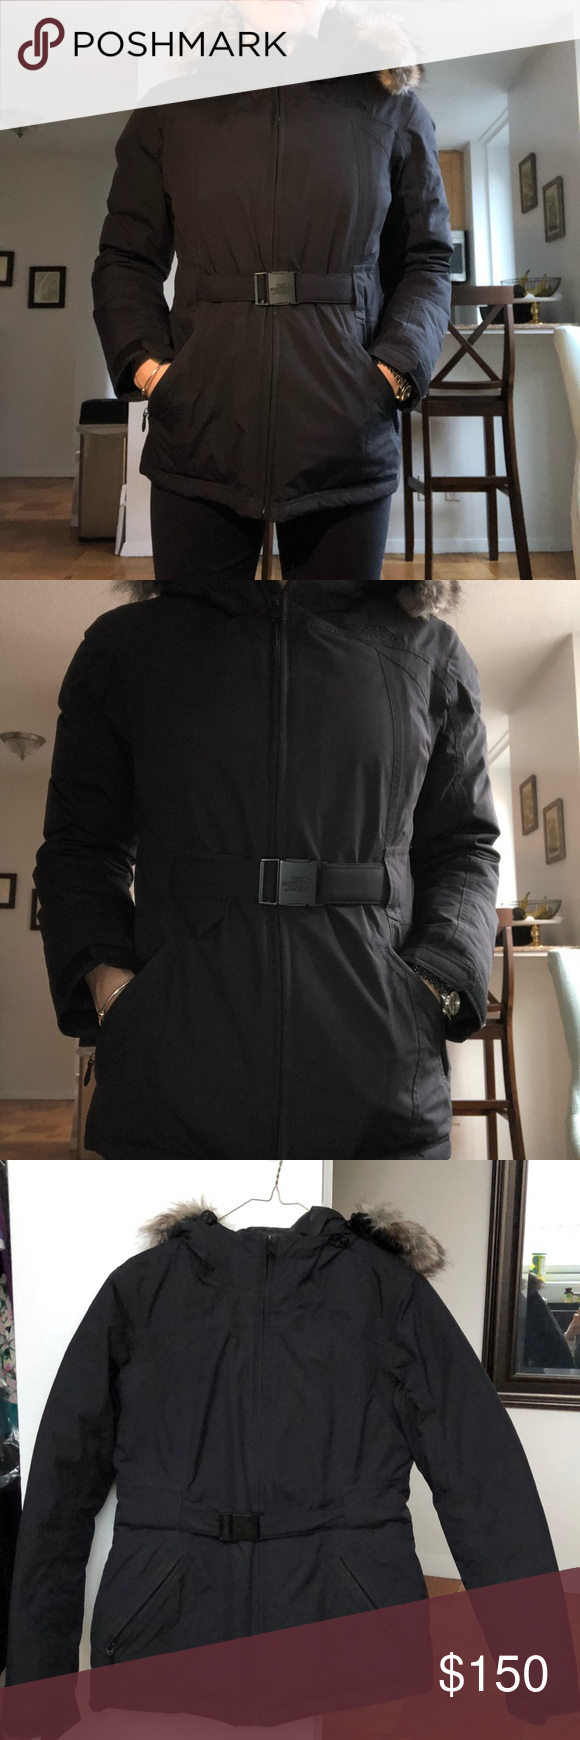 Women S North Face Puffer Jacket North Face Puffer Jacket Black Winter Jacket Jackets [ 1740 x 580 Pixel ]